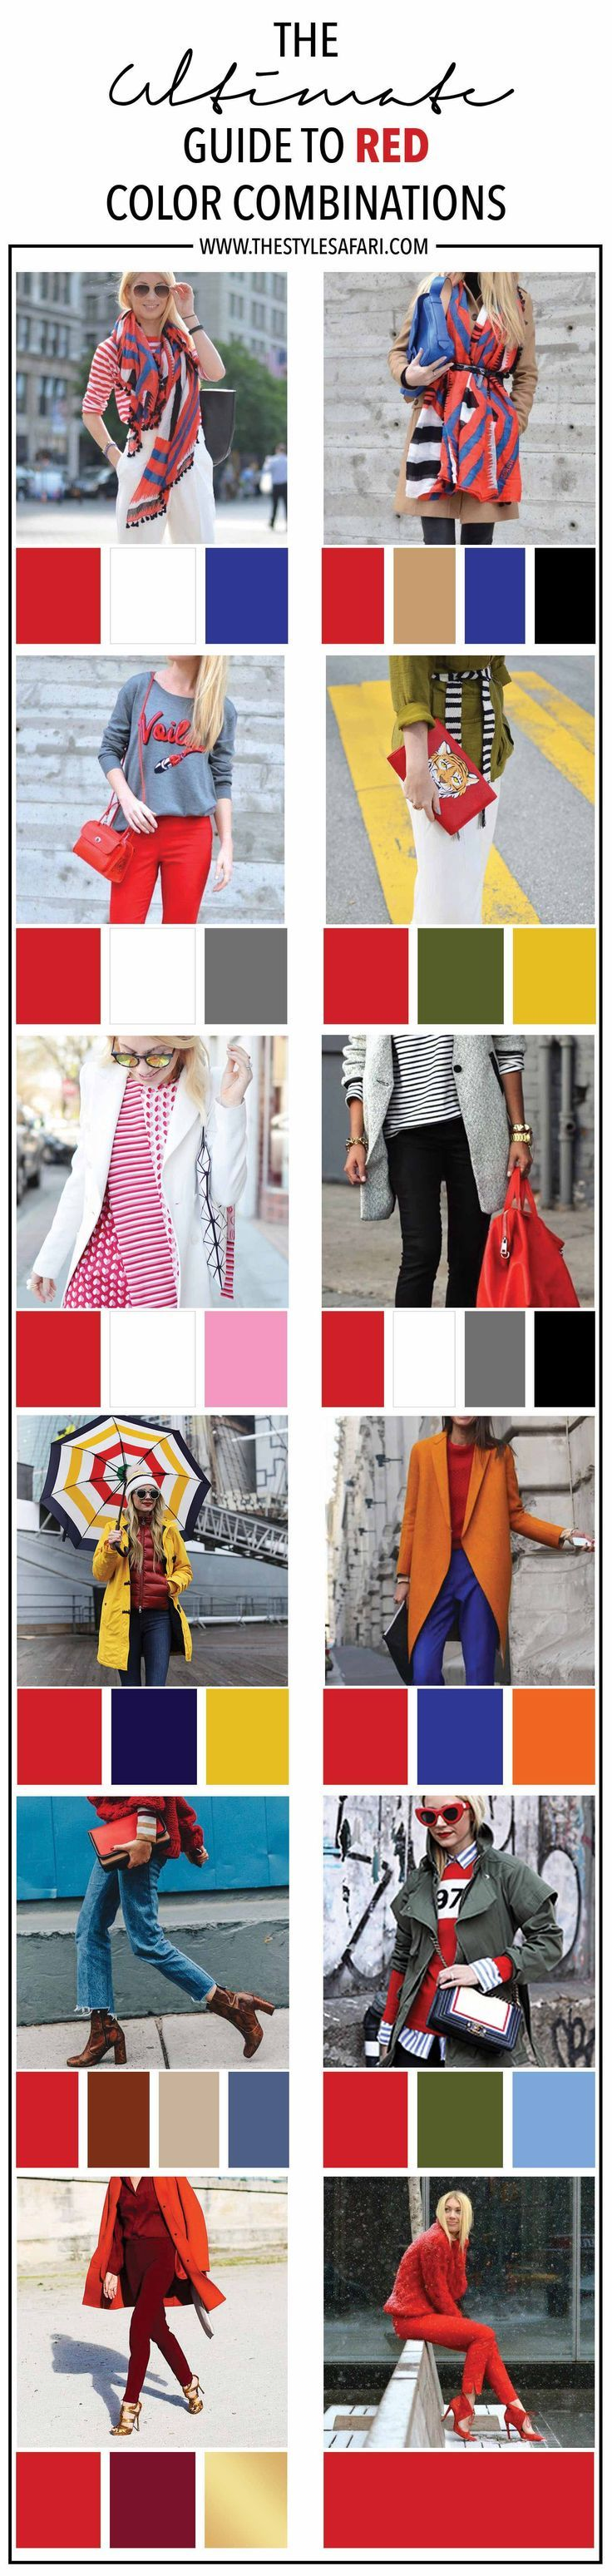 The Ultimate Guide to Red color combinations, how to wear red, red outfit ideas, red color combos